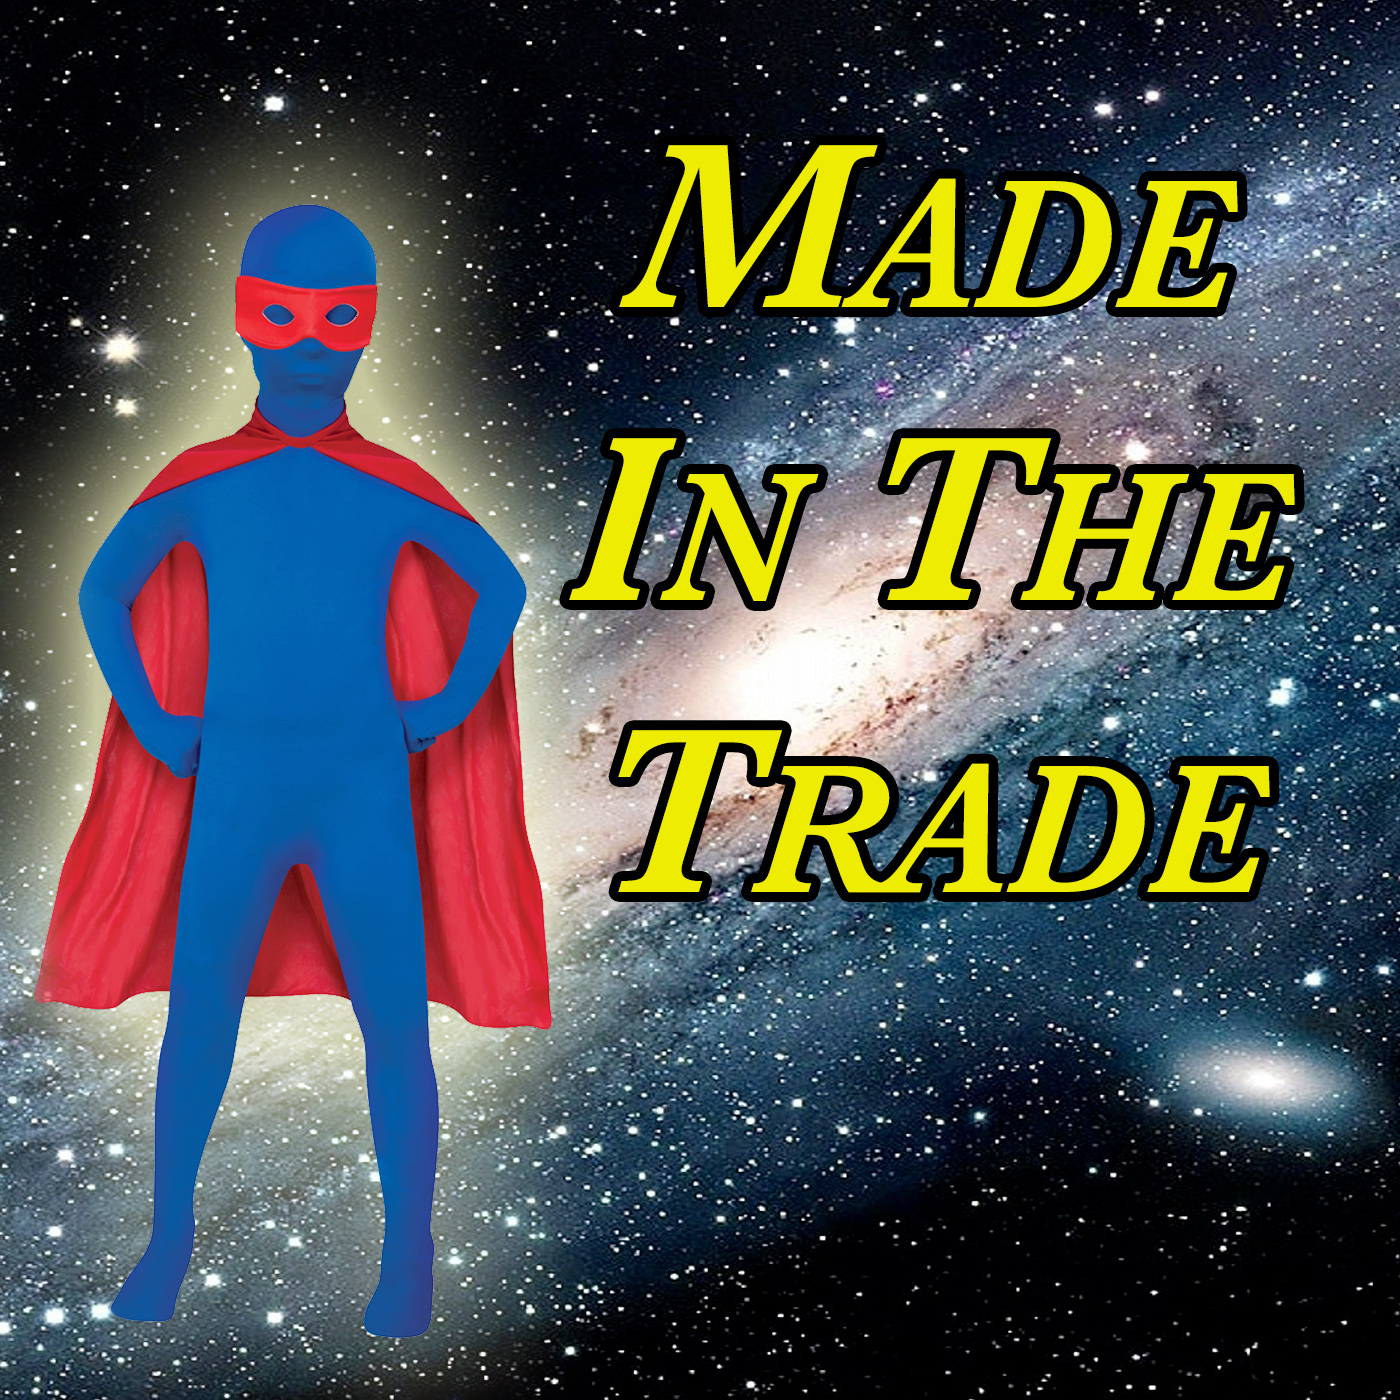 Orlando Podcast » Made in the Trade